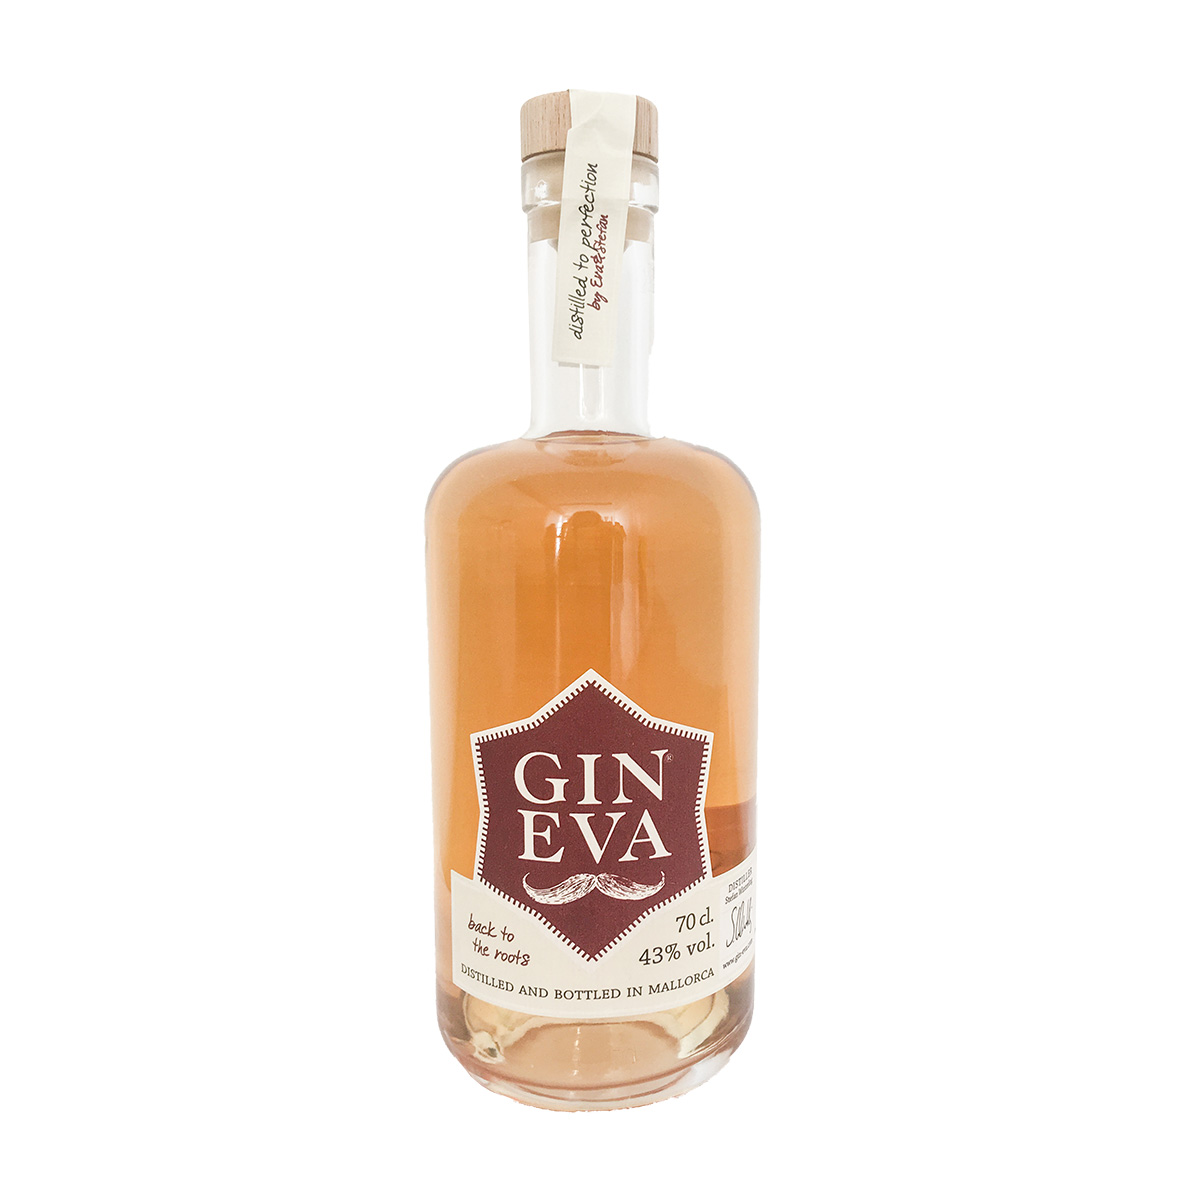 ARTISAN OLD TOM GIN